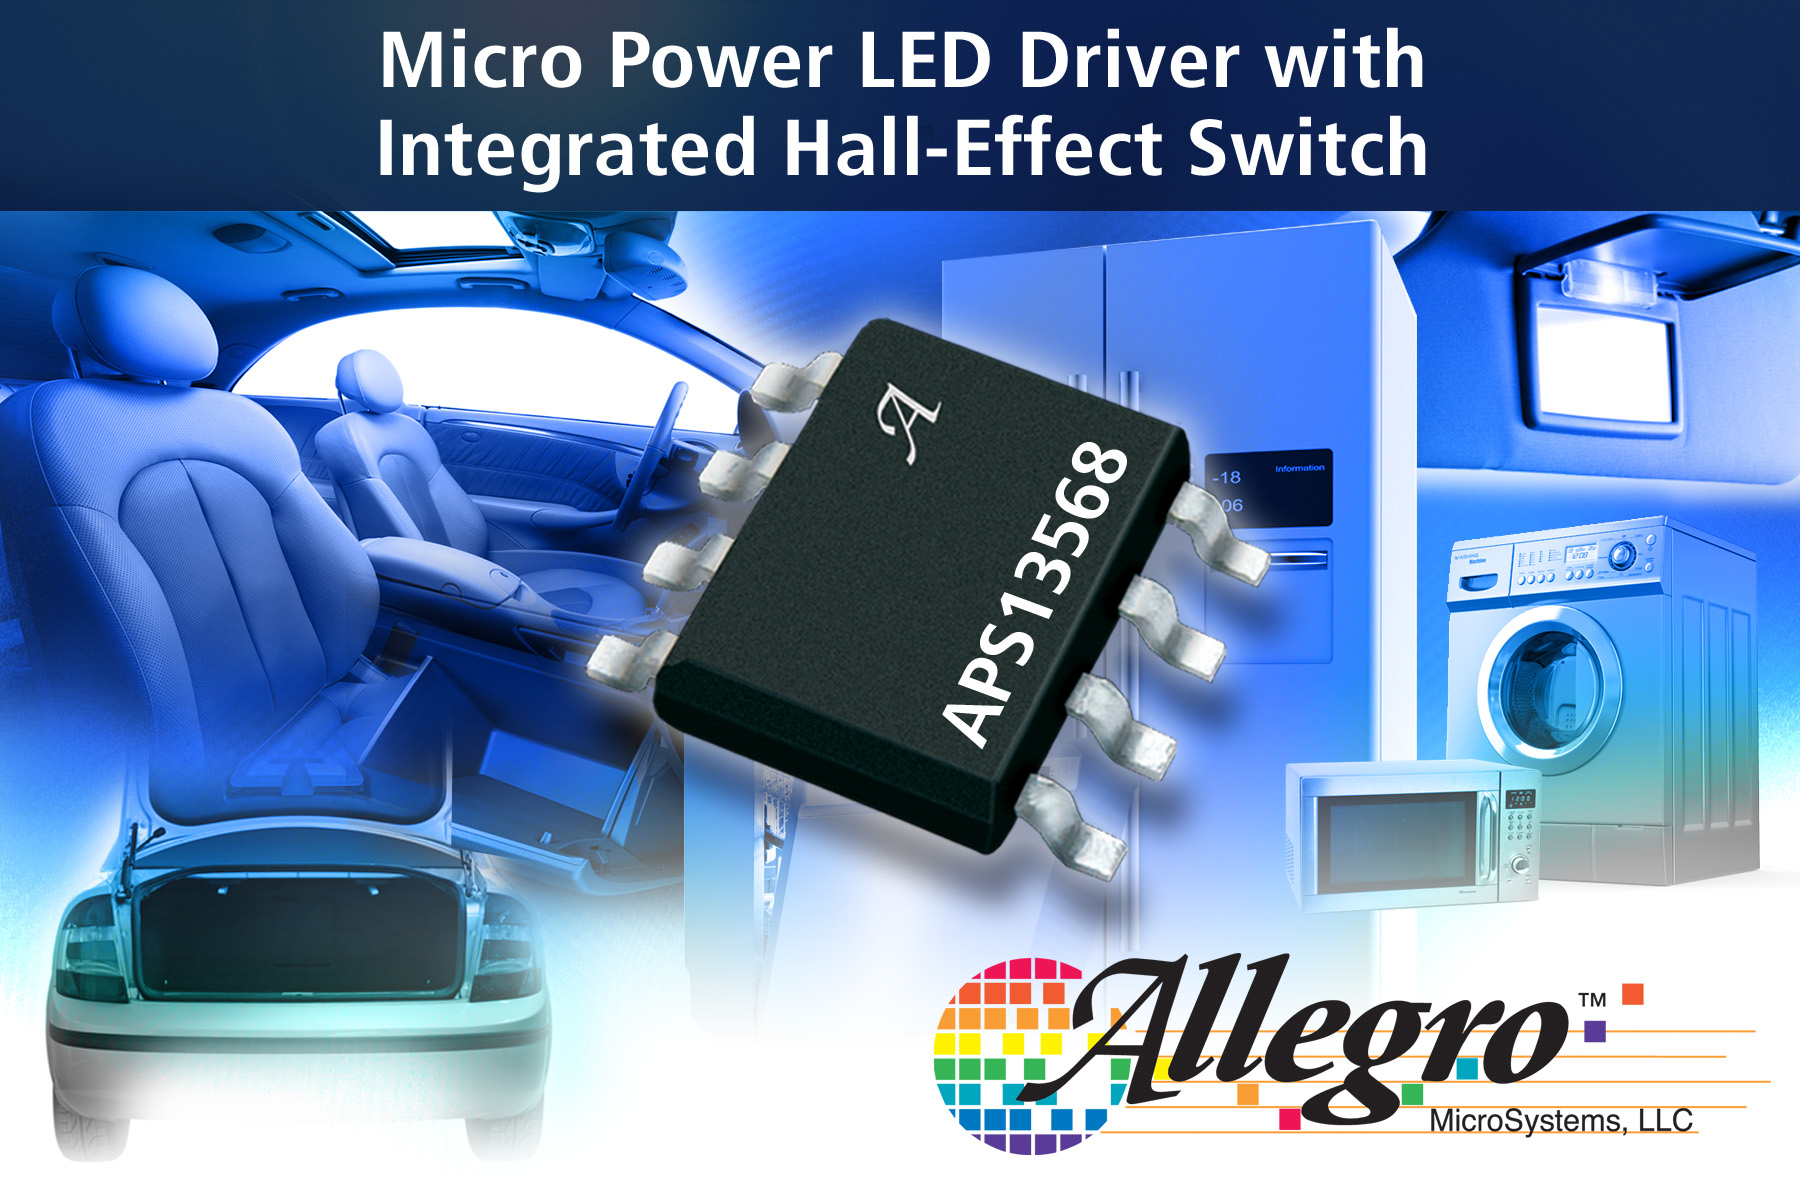 Led Driver Ic With Micropower And Integrated Hall Effect Switch By Power Circuit Allegro